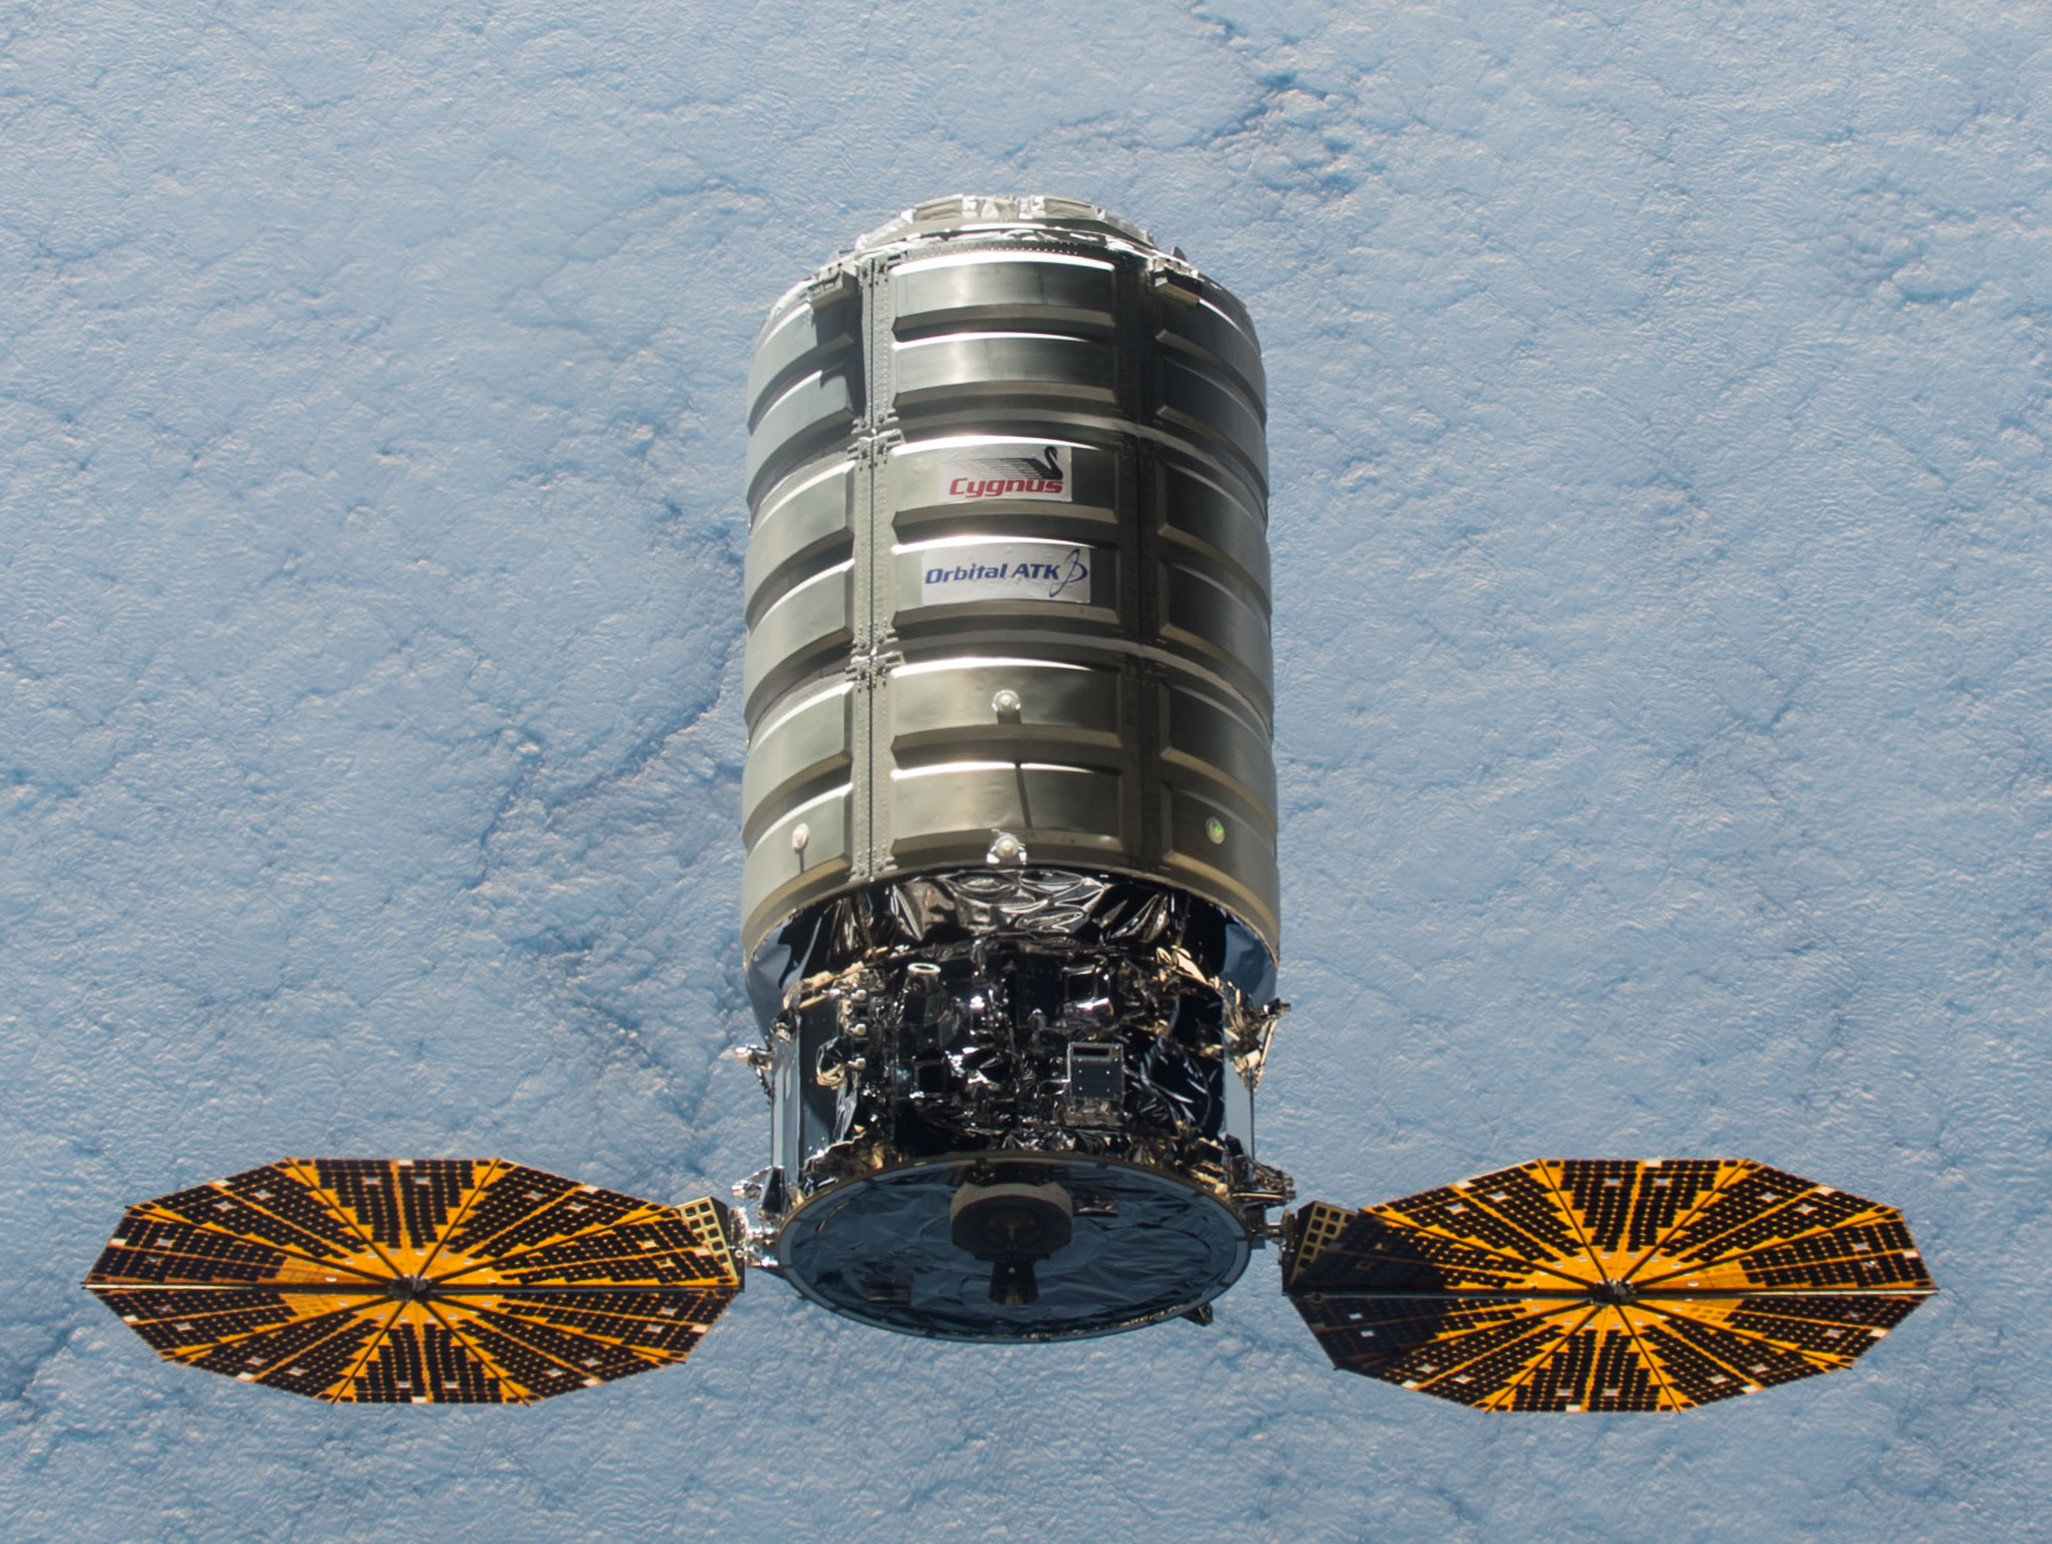 ISS-45_Cygnus_5_approaching_the_ISS_-_crop.jpg